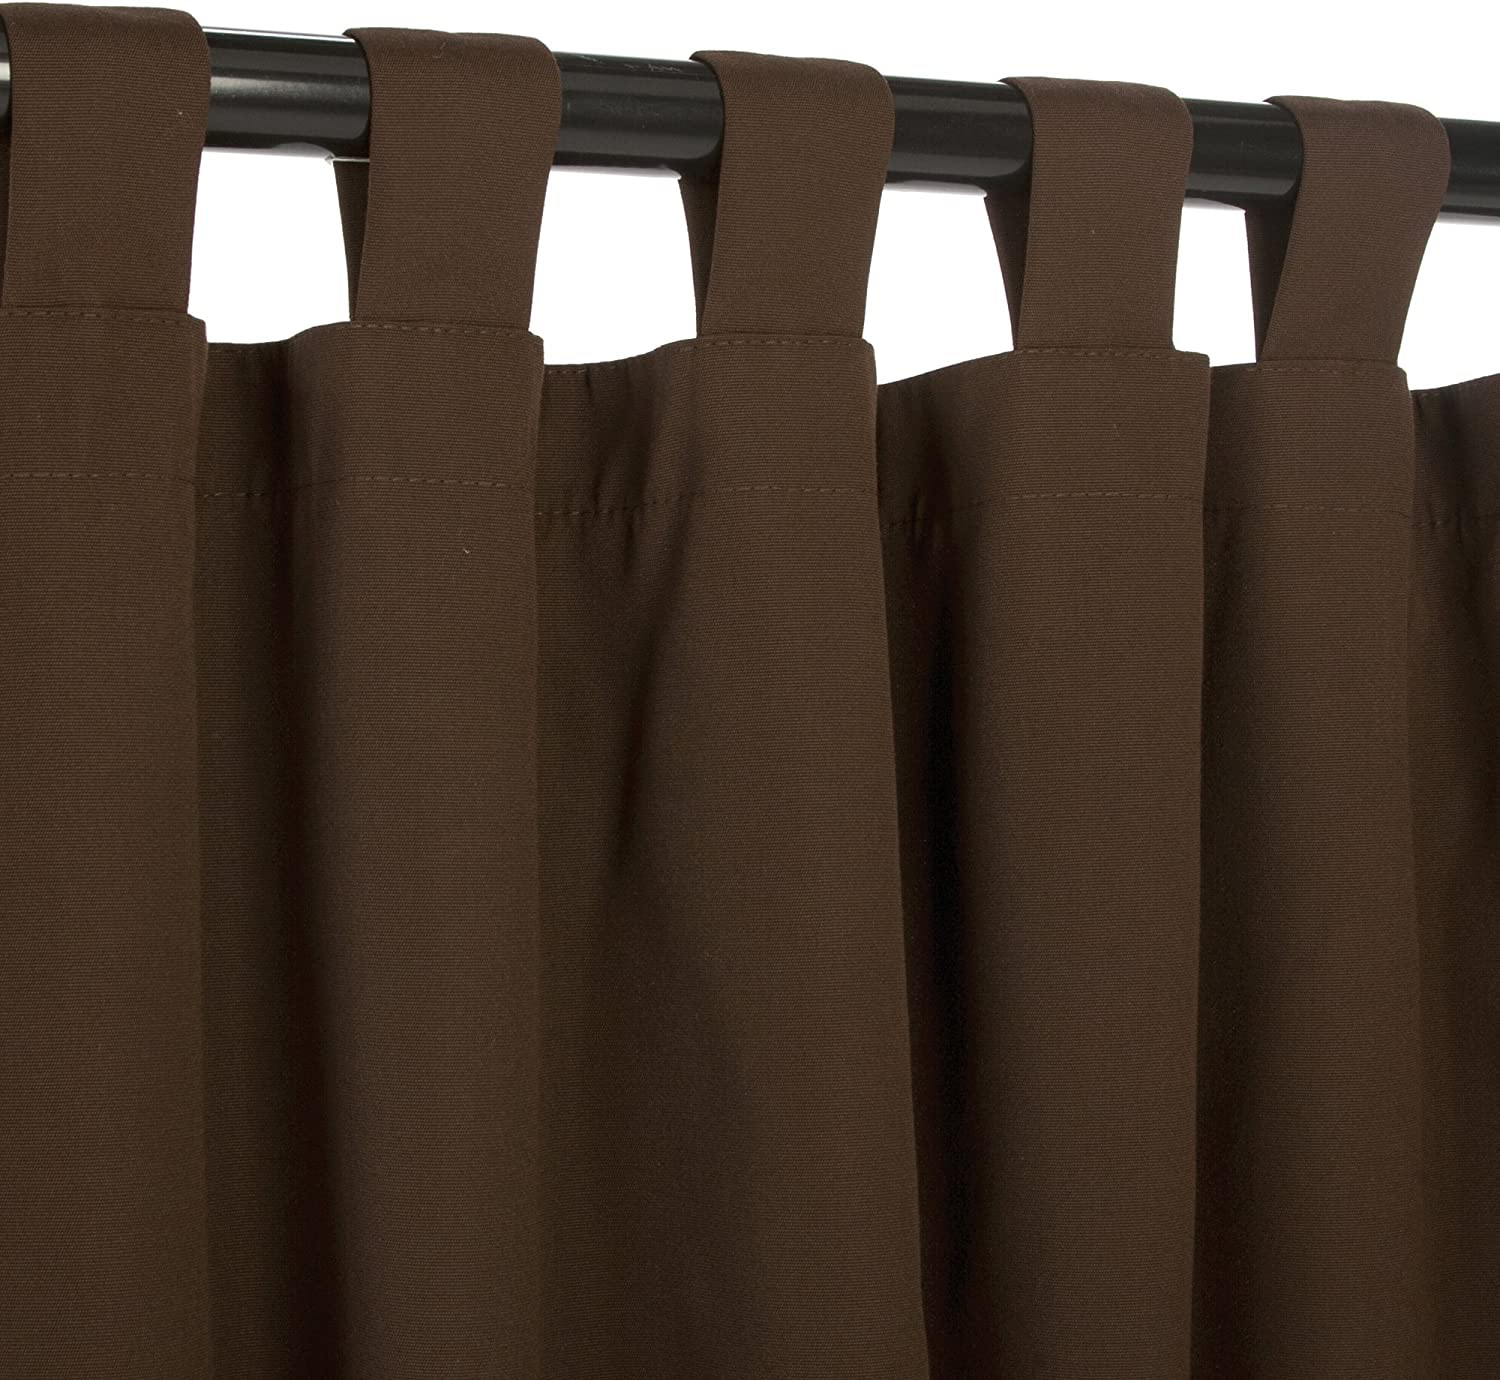 Tab Top and More Pergola Sunbrella Outdoor Curtain Panel 50 by 84 Inch Gazebo Bay Brown and Sizes Includes Custom Storage Bag; Perfect for Your Patio Porch